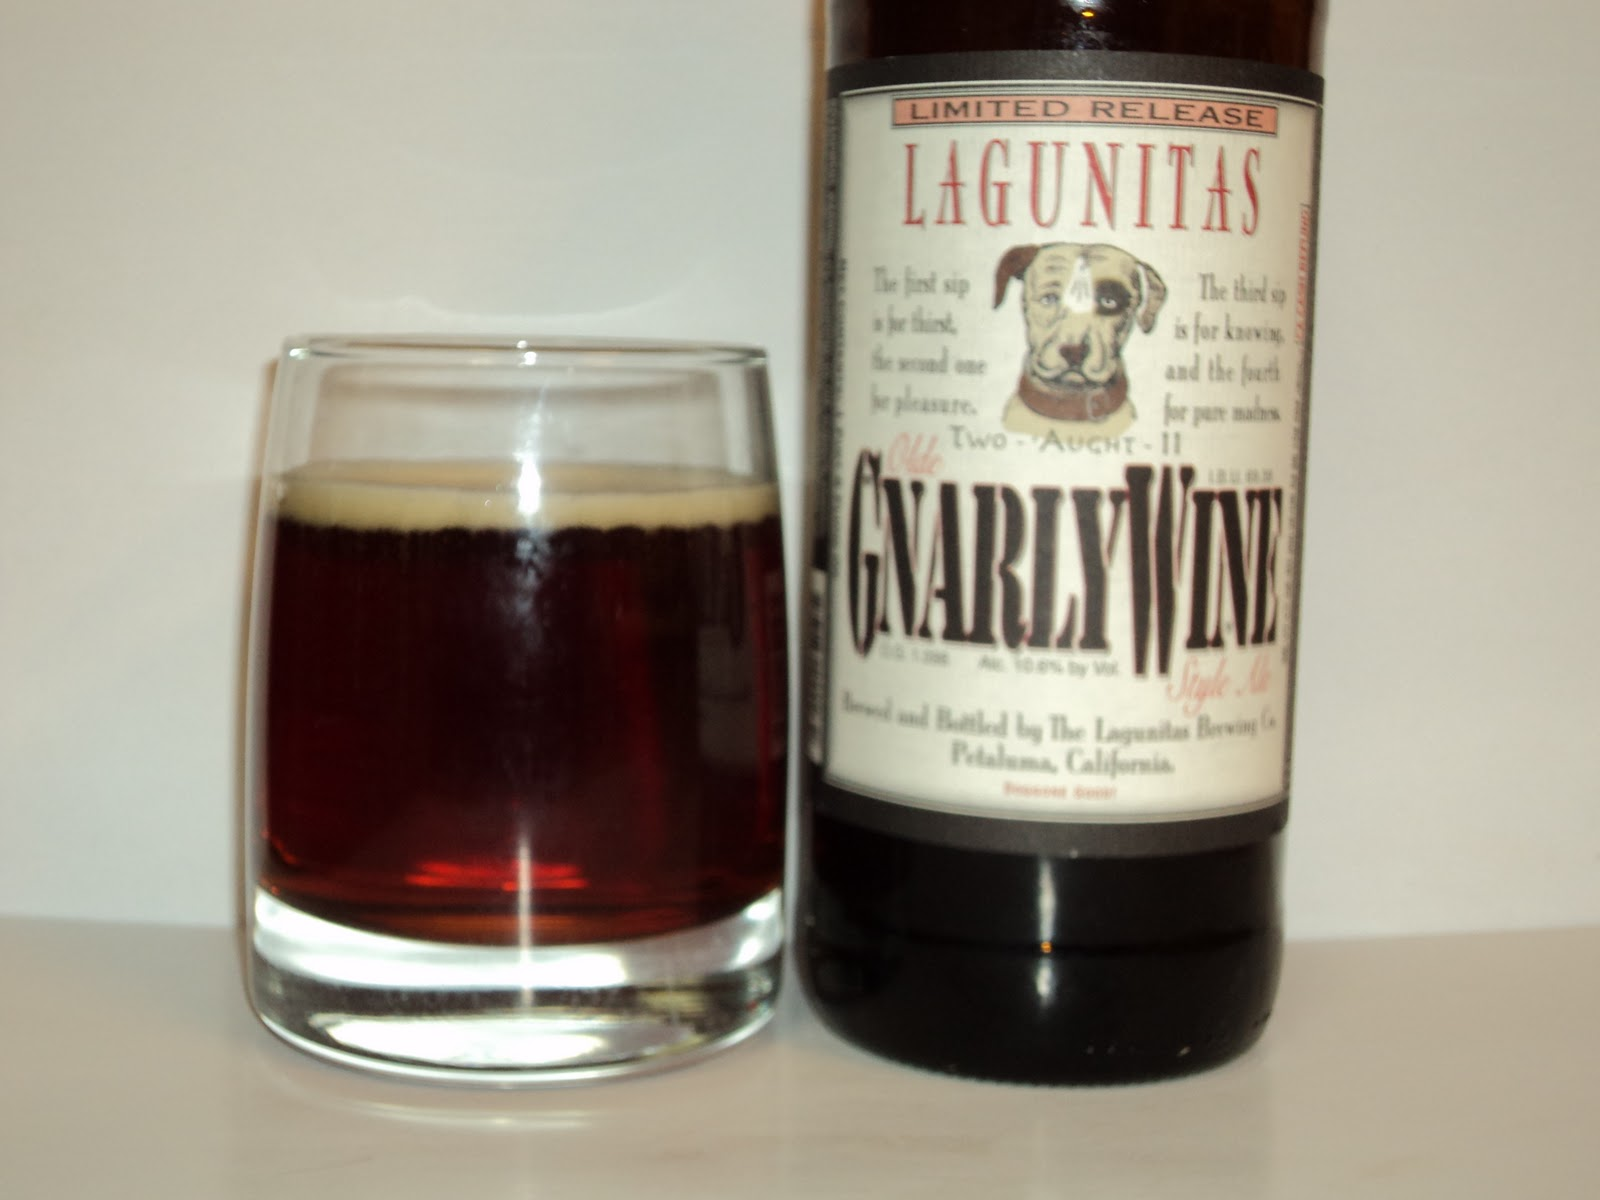 Water + Malt + Hops + Yeast = Beer: Lagunitas - IPA and